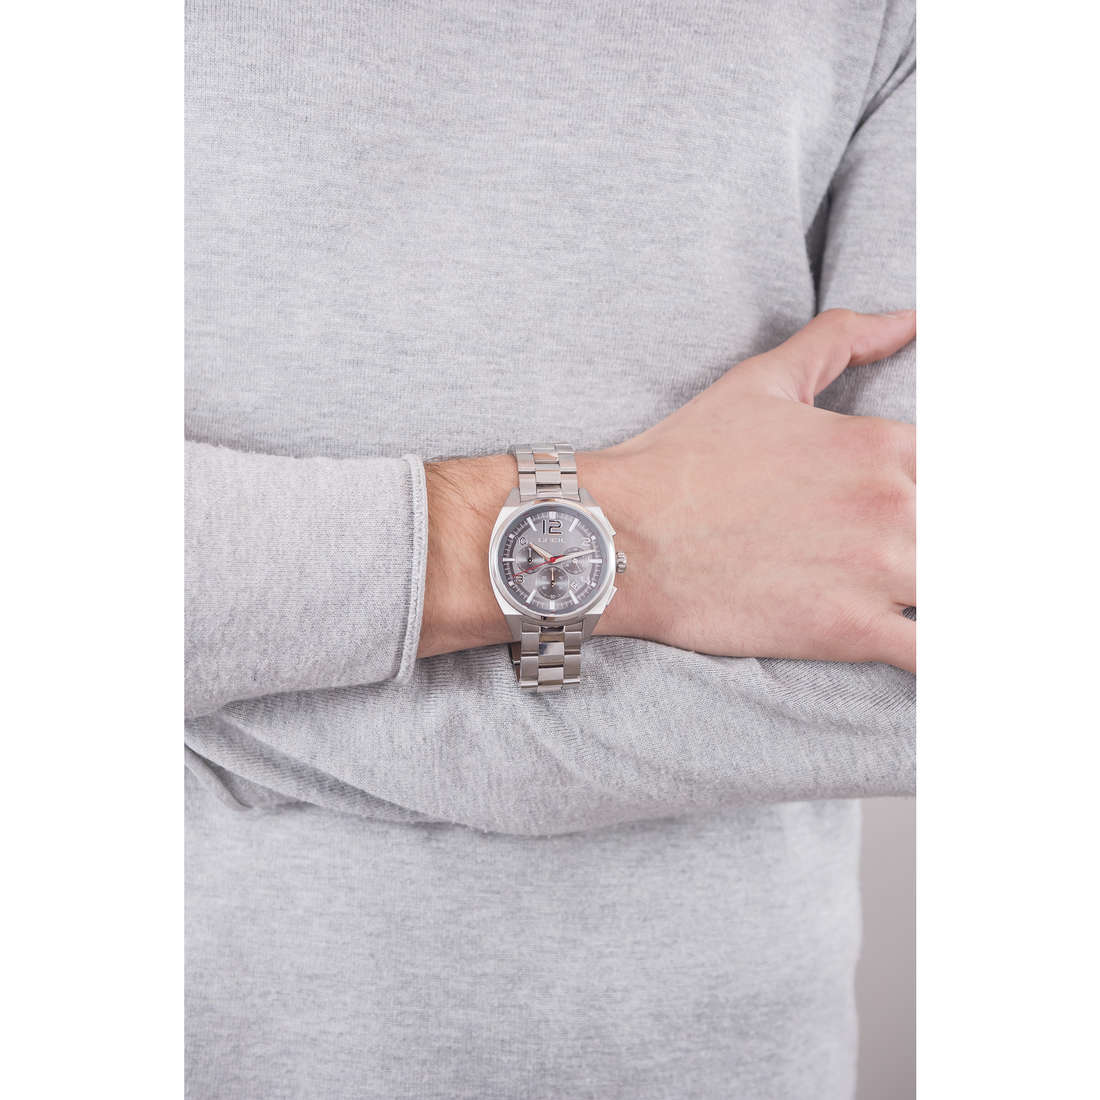 Breil chronographes Master homme TW1405 photo wearing